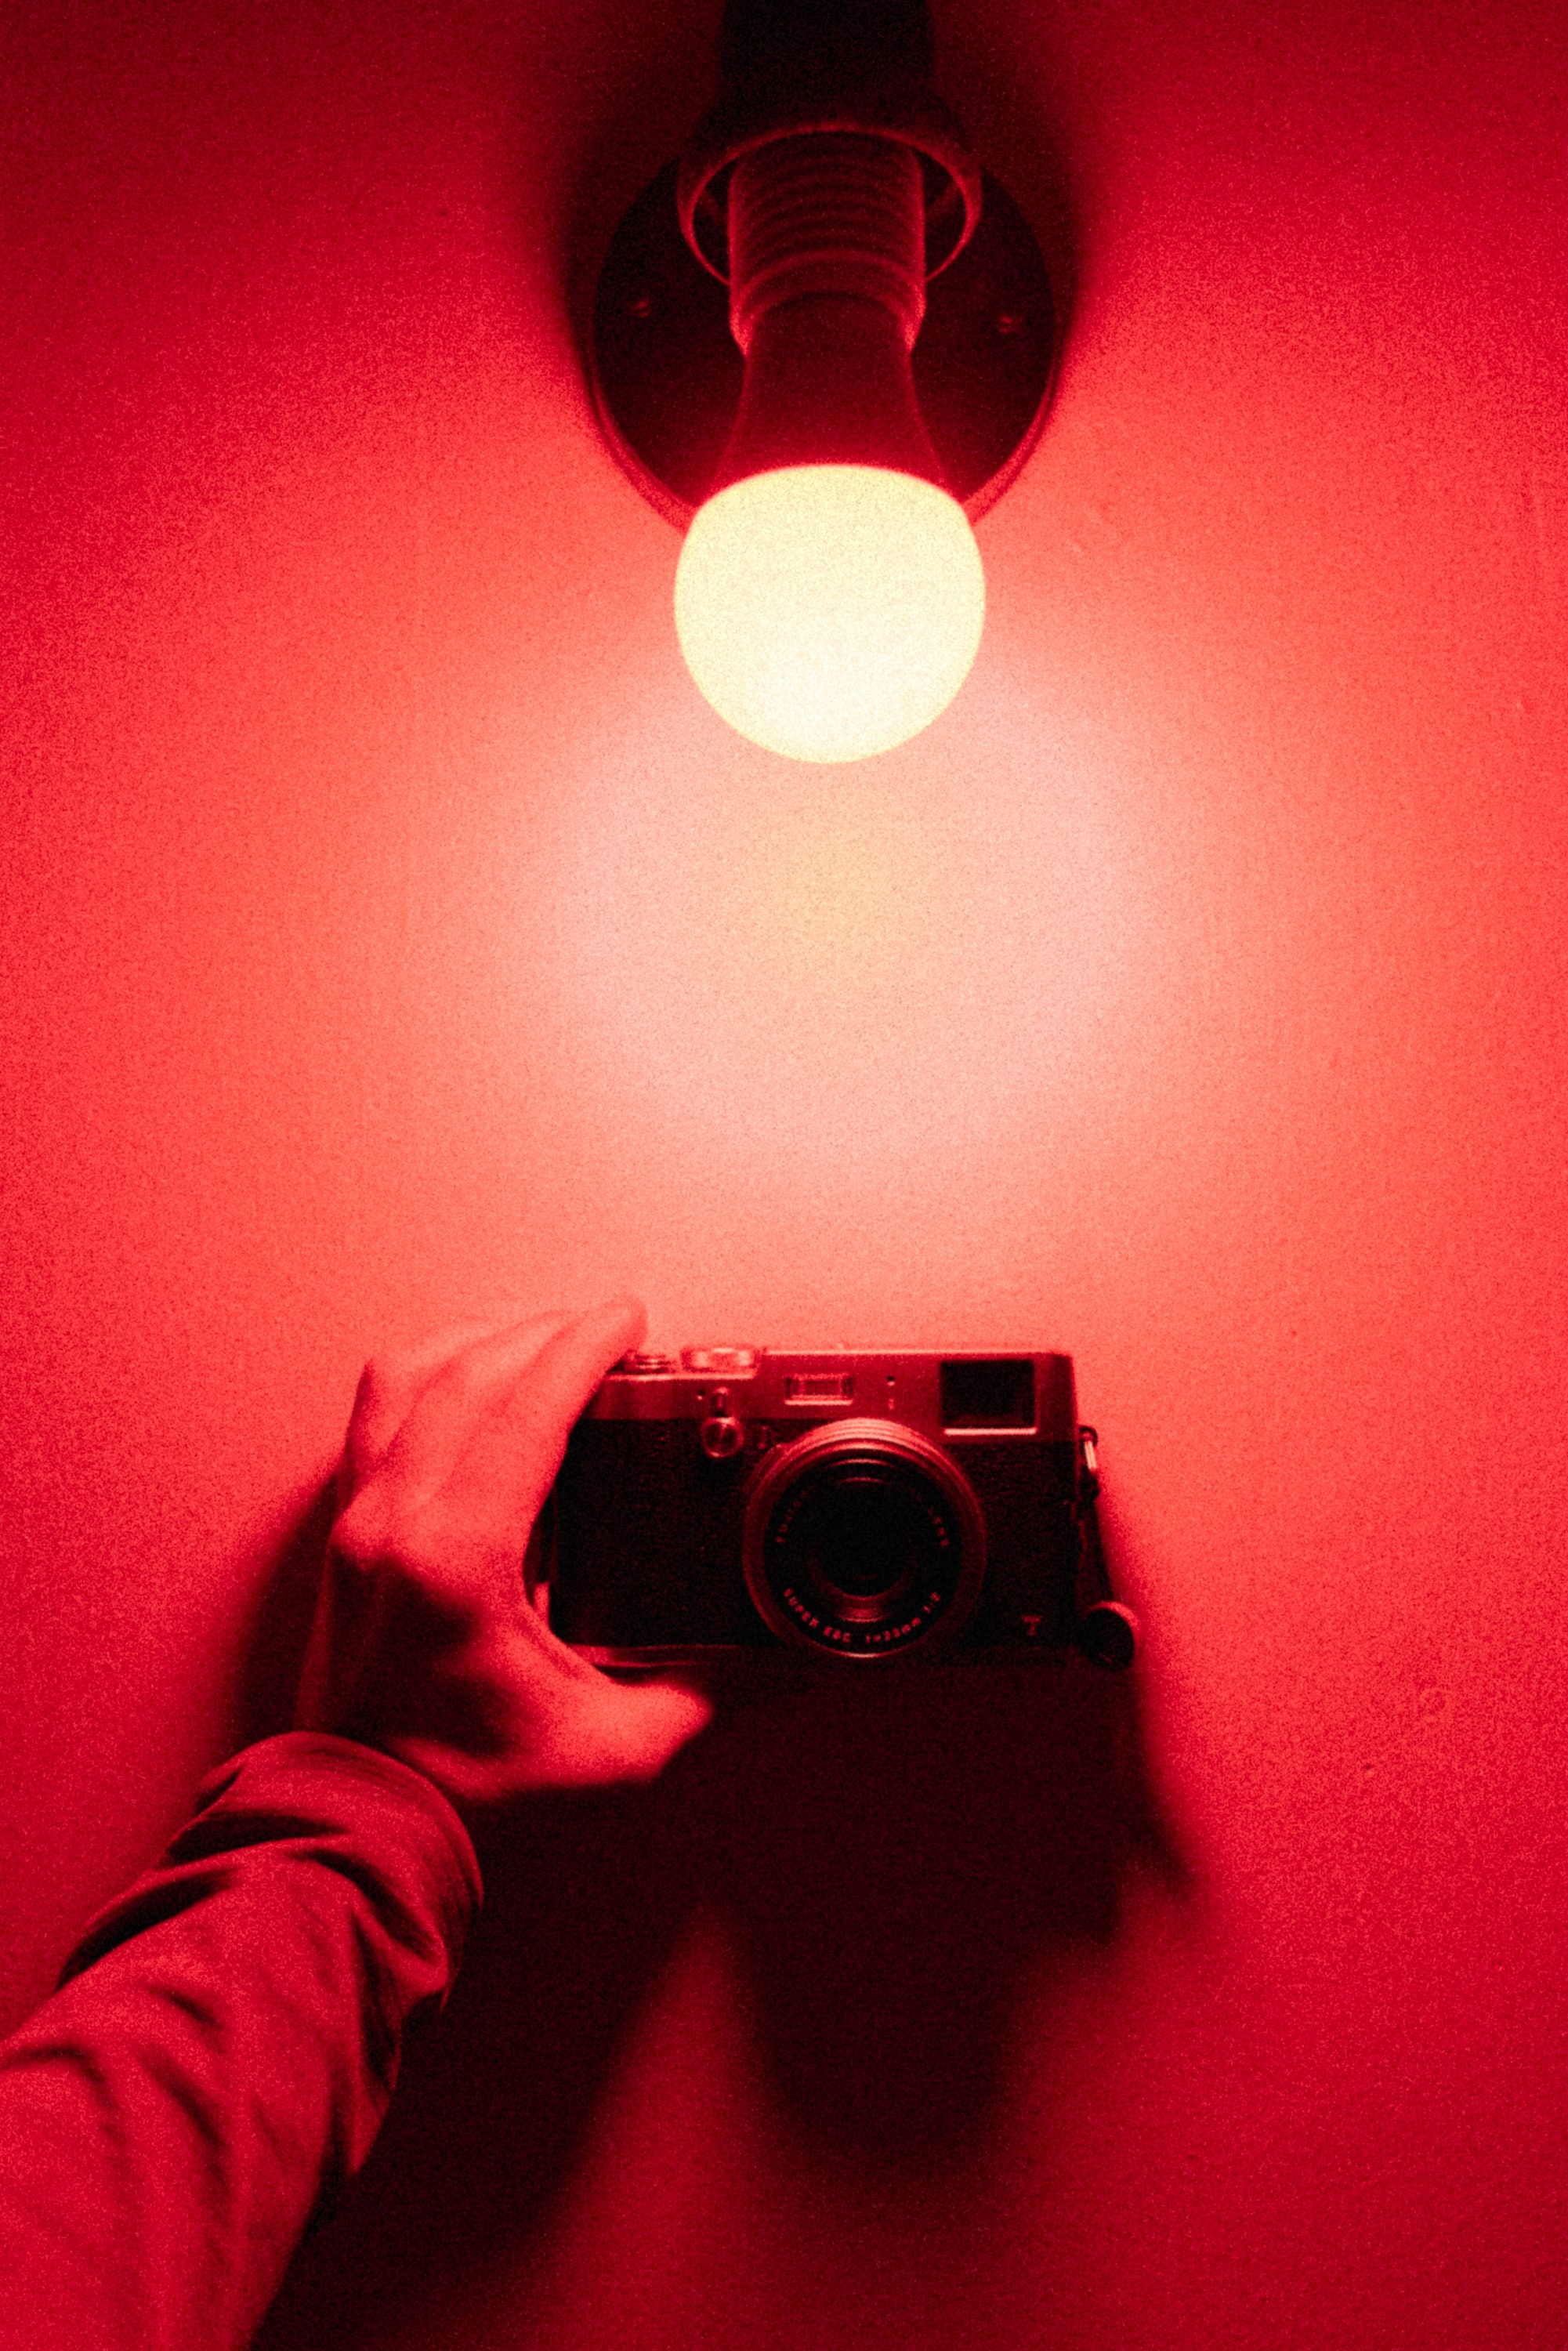 151379 Screensavers and Wallpapers Camera for phone. Download Miscellanea, Miscellaneous, Camera, Hand, Light Bulb, Shine, Light pictures for free